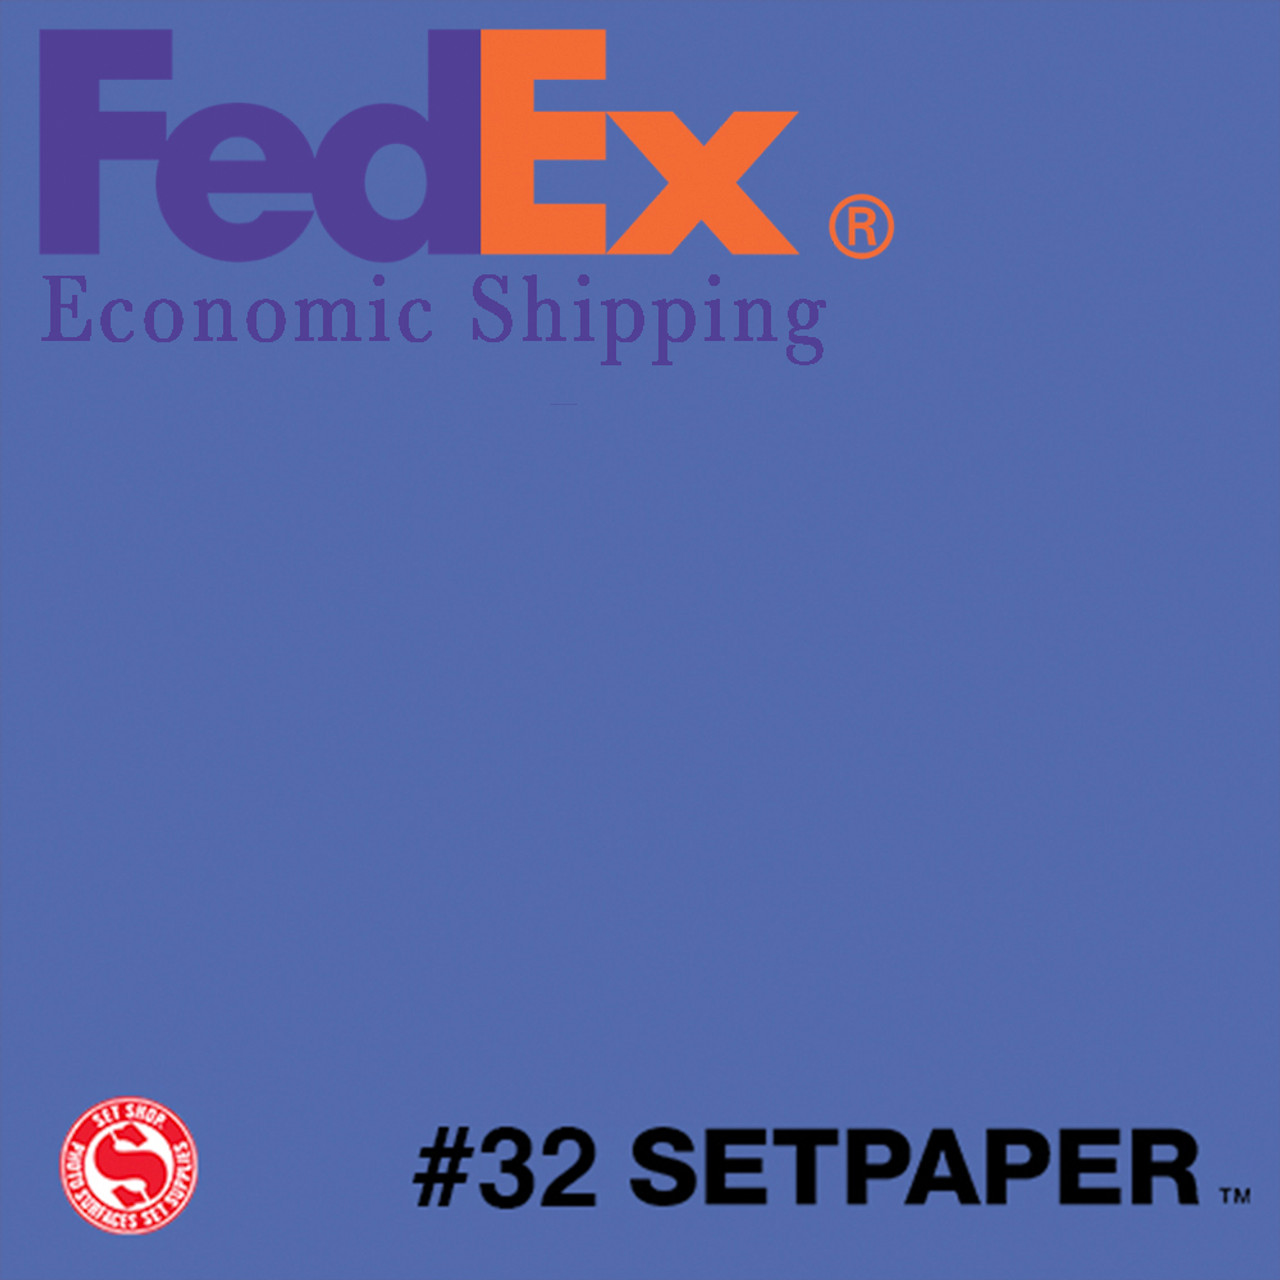 "(ECONOMIC SHIPPING) SETPAPER - ROYAL BLUE 48"" x 36' (1.2 x 11m)"